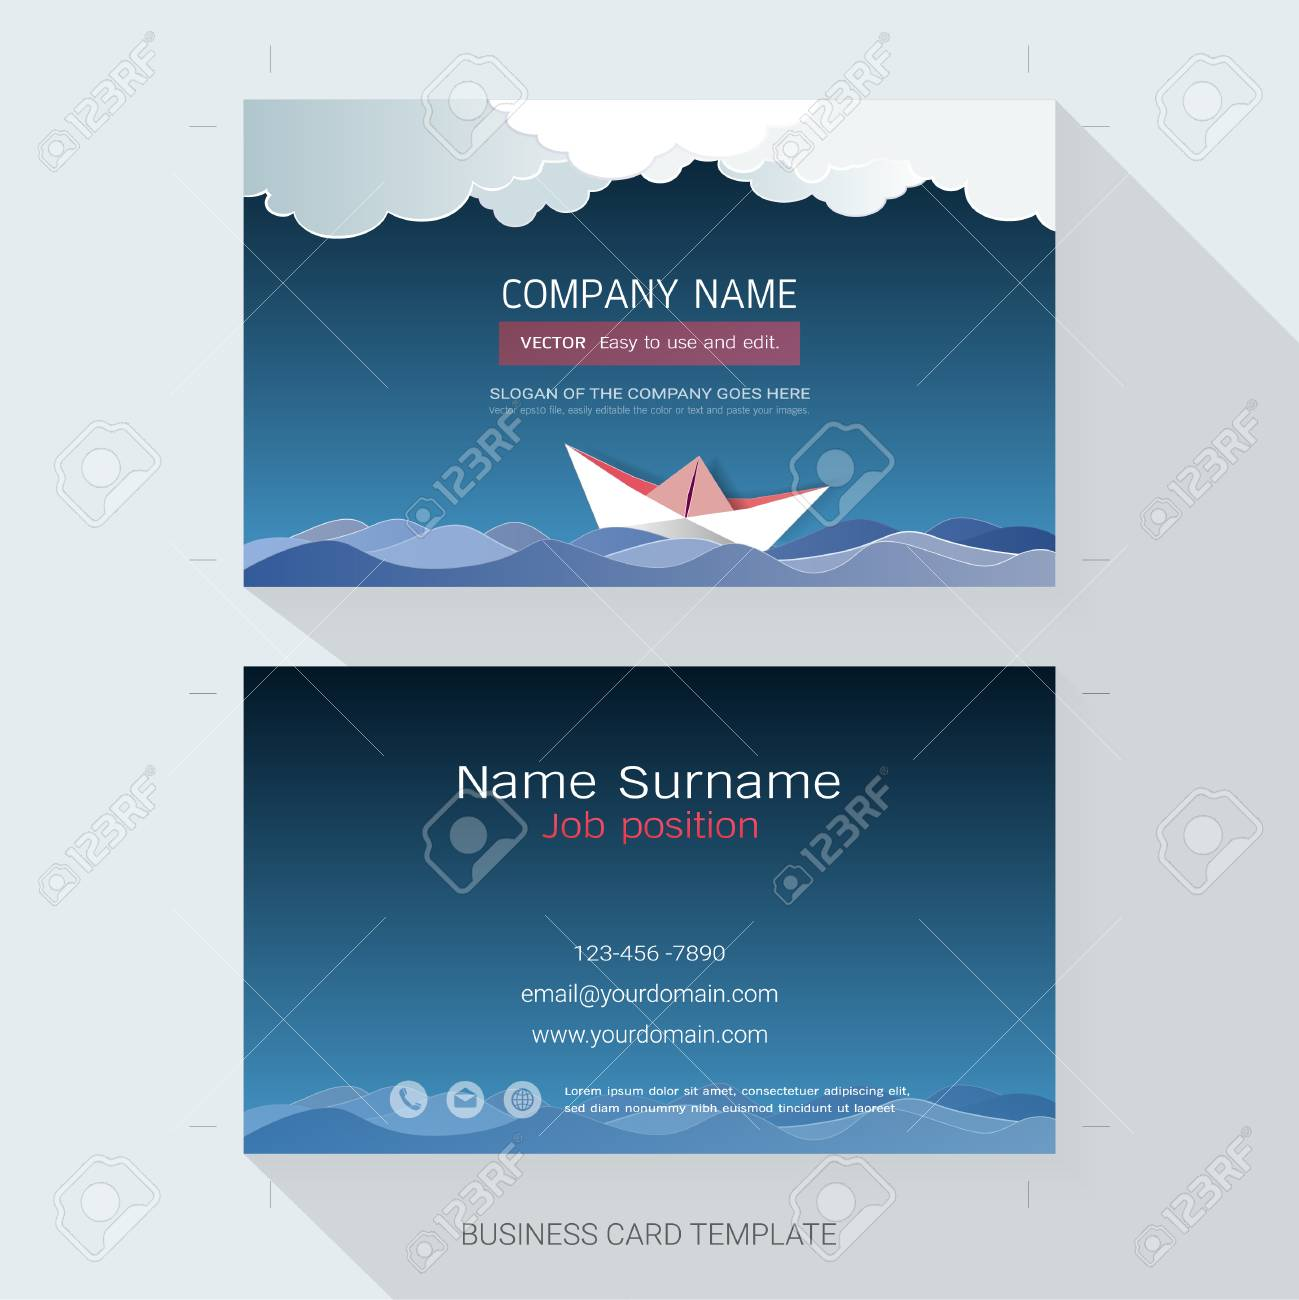 name card or business card design templatethe style is simple also modern and